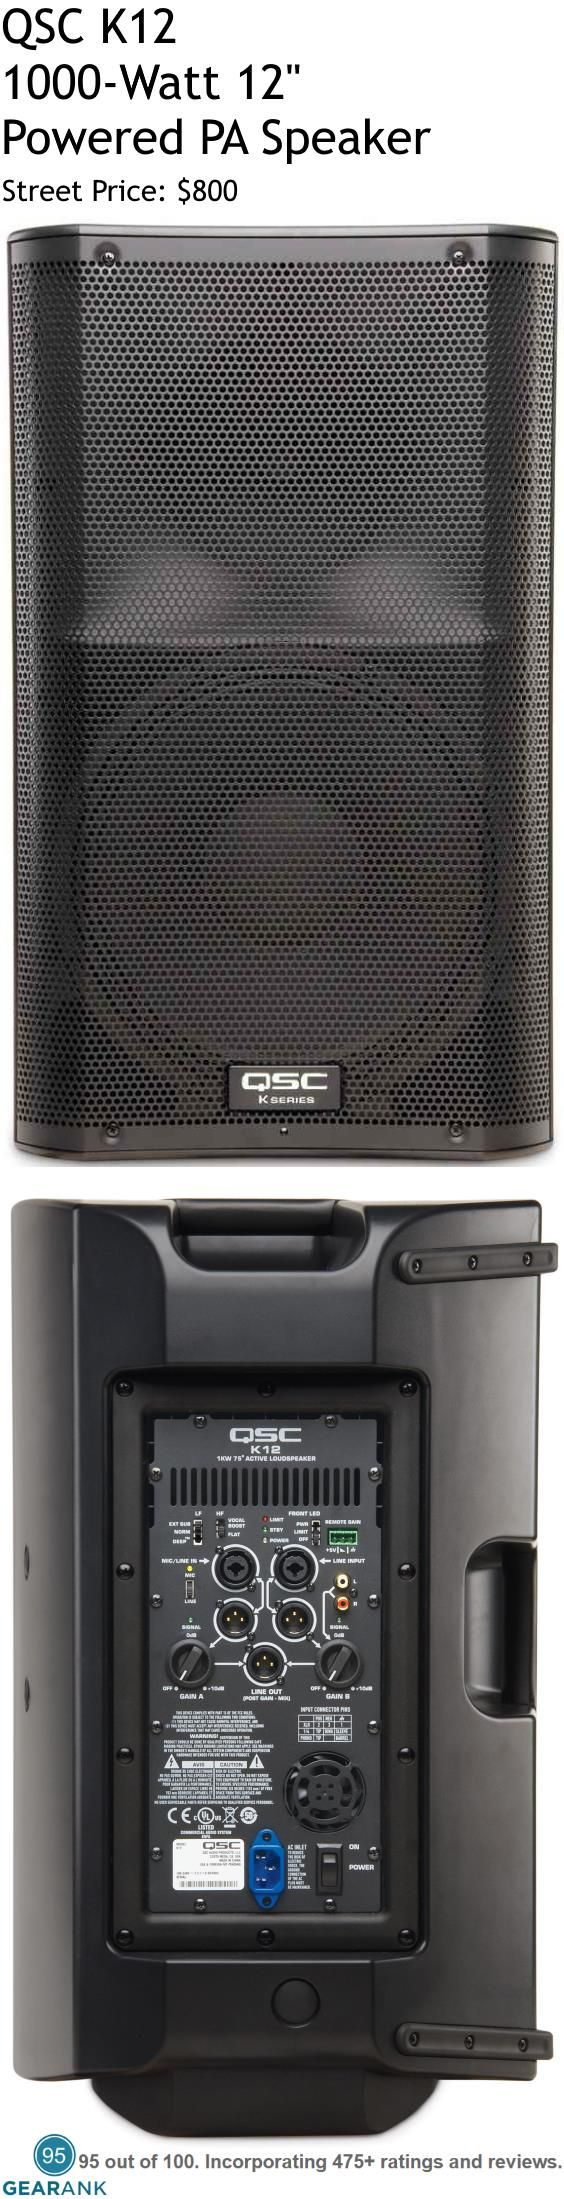 "QSC K12 1000W 12"" Powered PA Speaker. The QSC K12 gets positive reviews for its loud yet clear sound as well as the variety of connectivity options it provides. Reliability is also praised by musicians who have been regularly gigging with this speaker, citing the speaker's tough ABS exterior and solid build as noteworthy features.  For a Guide to The Best Powered PA Speakers see https://www.gearank.com/guides/powered-pa-speakers"